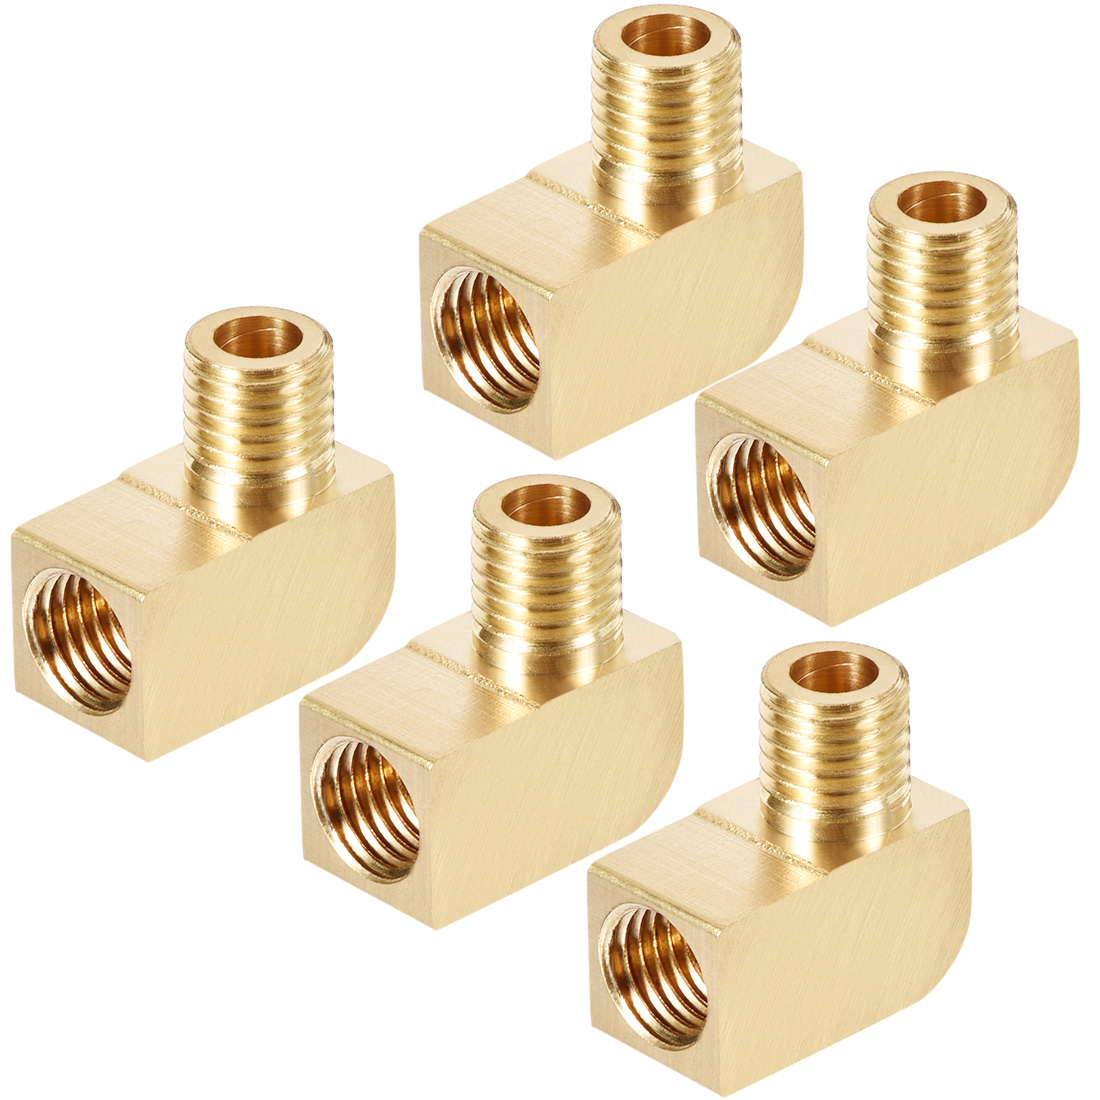 Brass Pipe Fitting 90 Degree Barstock Street Elbow M8 Male x M8 Female Pipe 5pcs